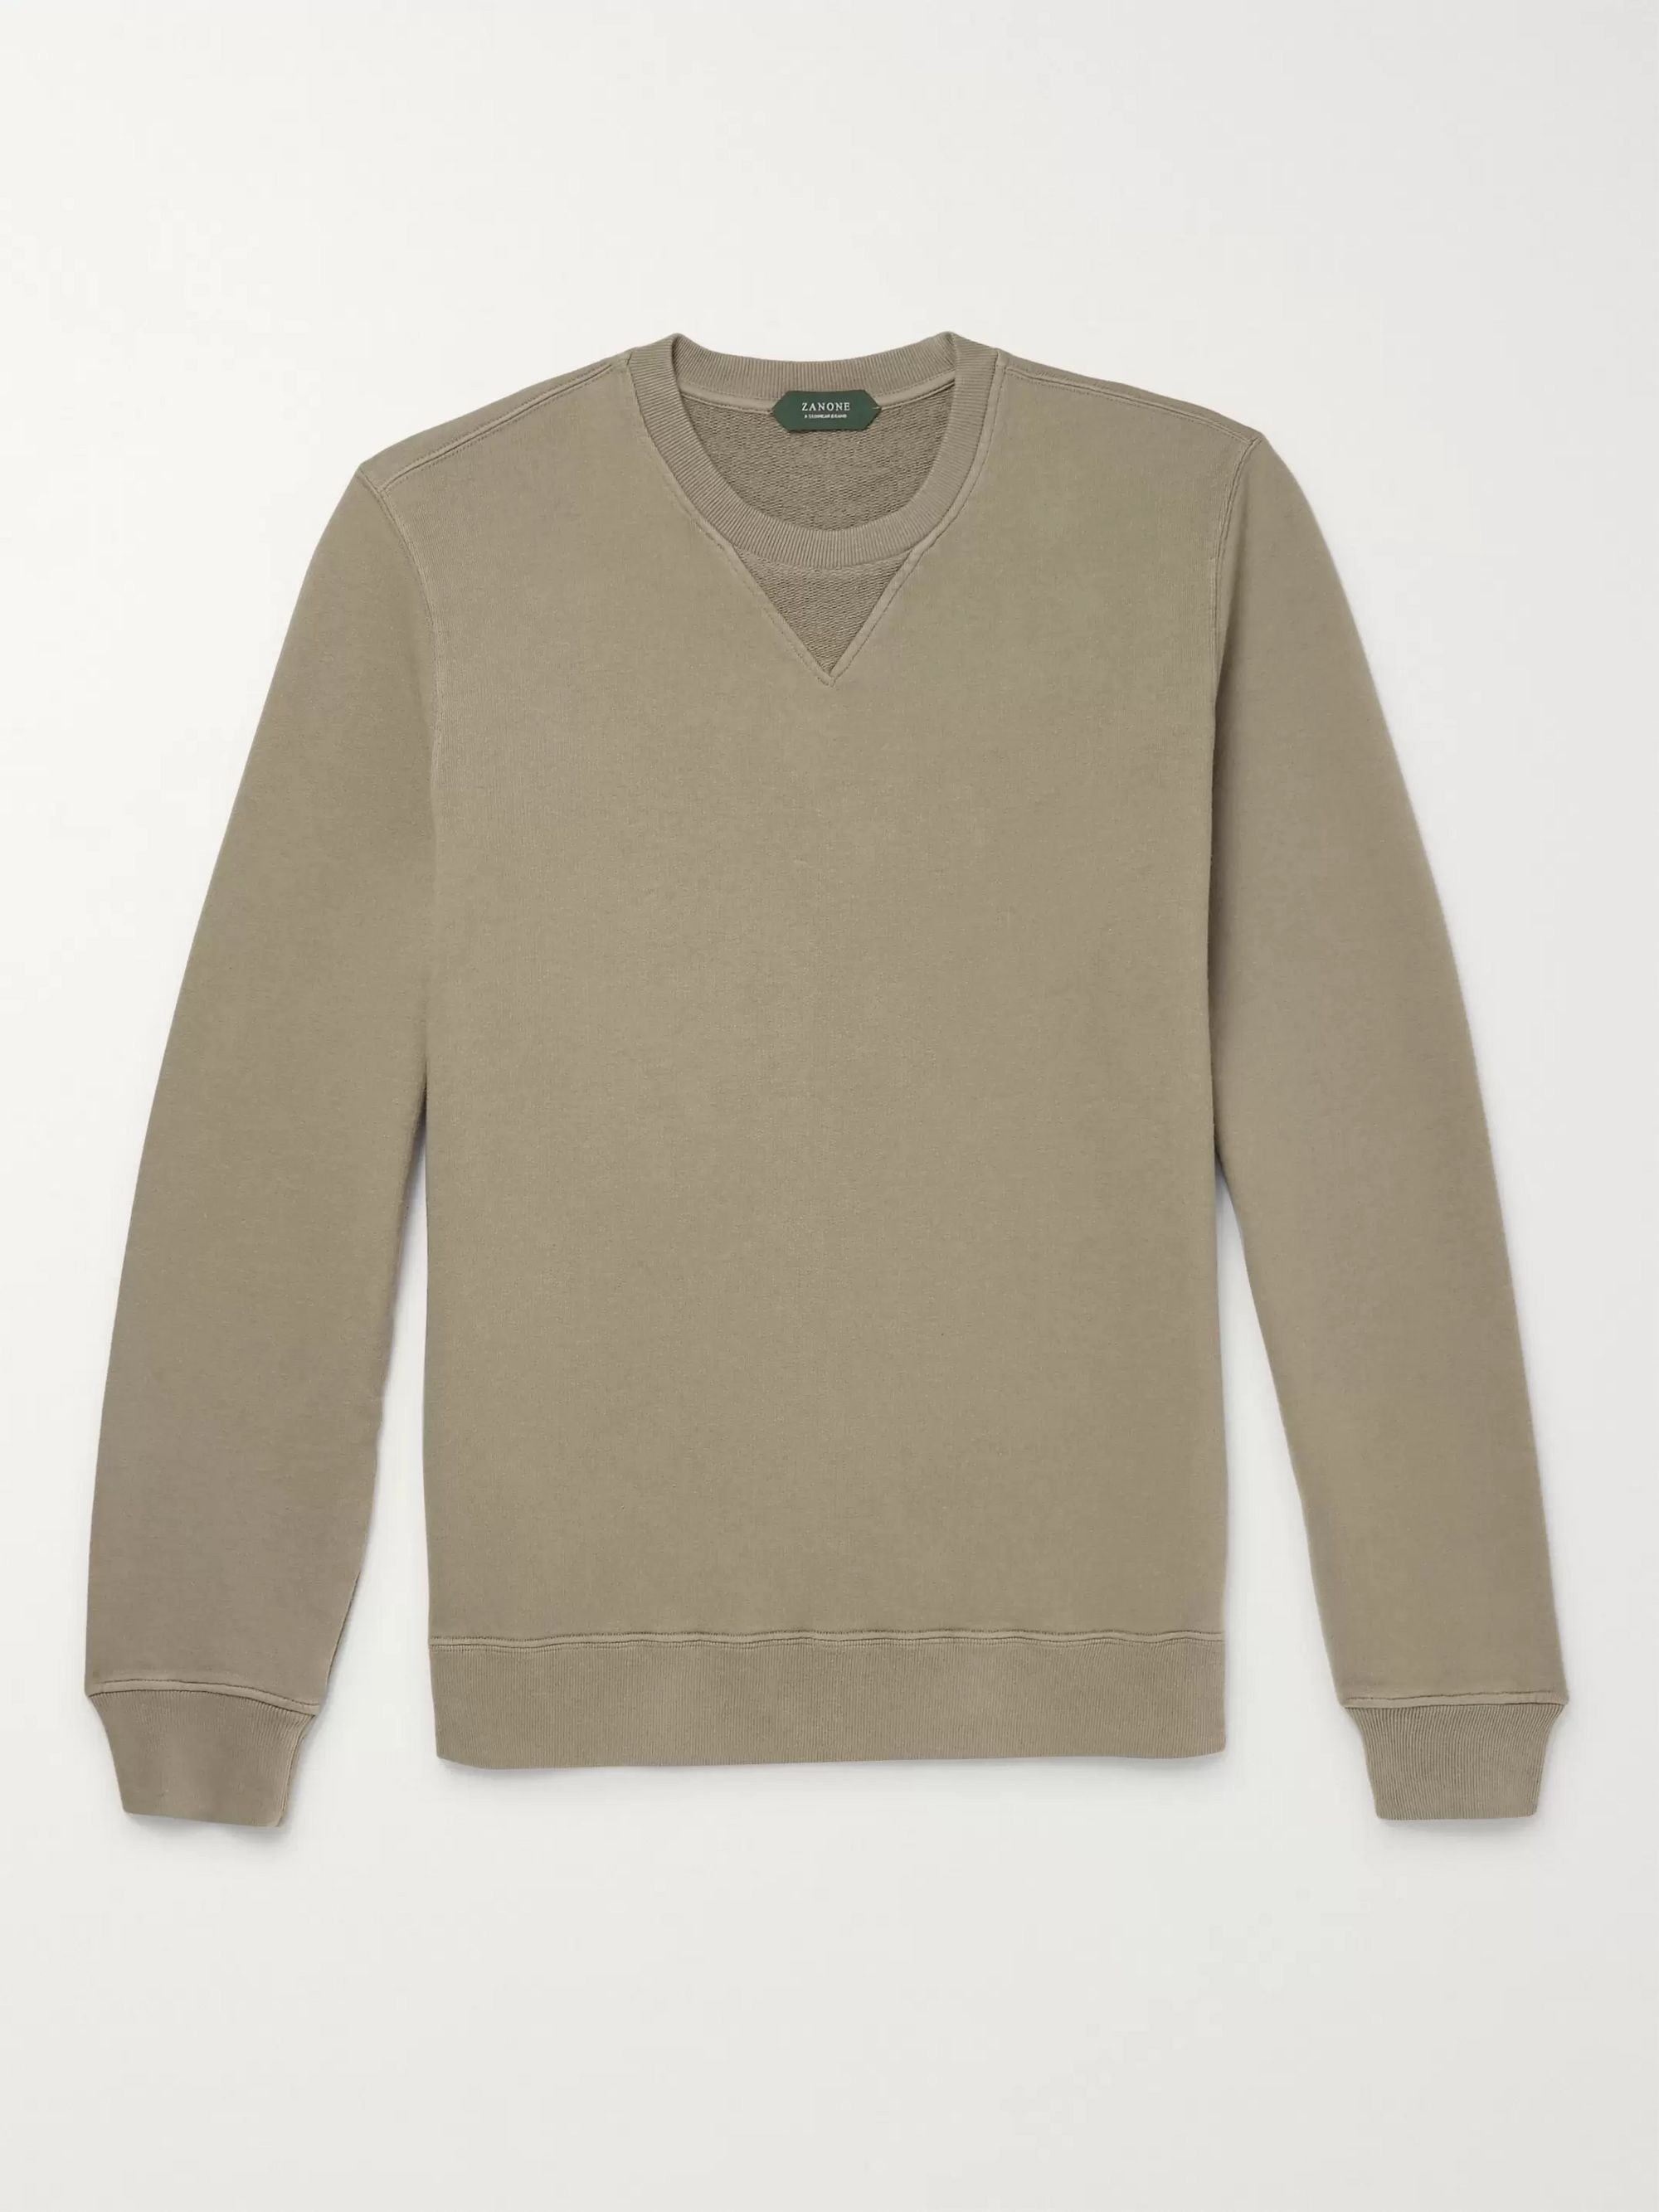 Incotex Garment-Dyed Loopback Cotton-Jersey Sweatshirt